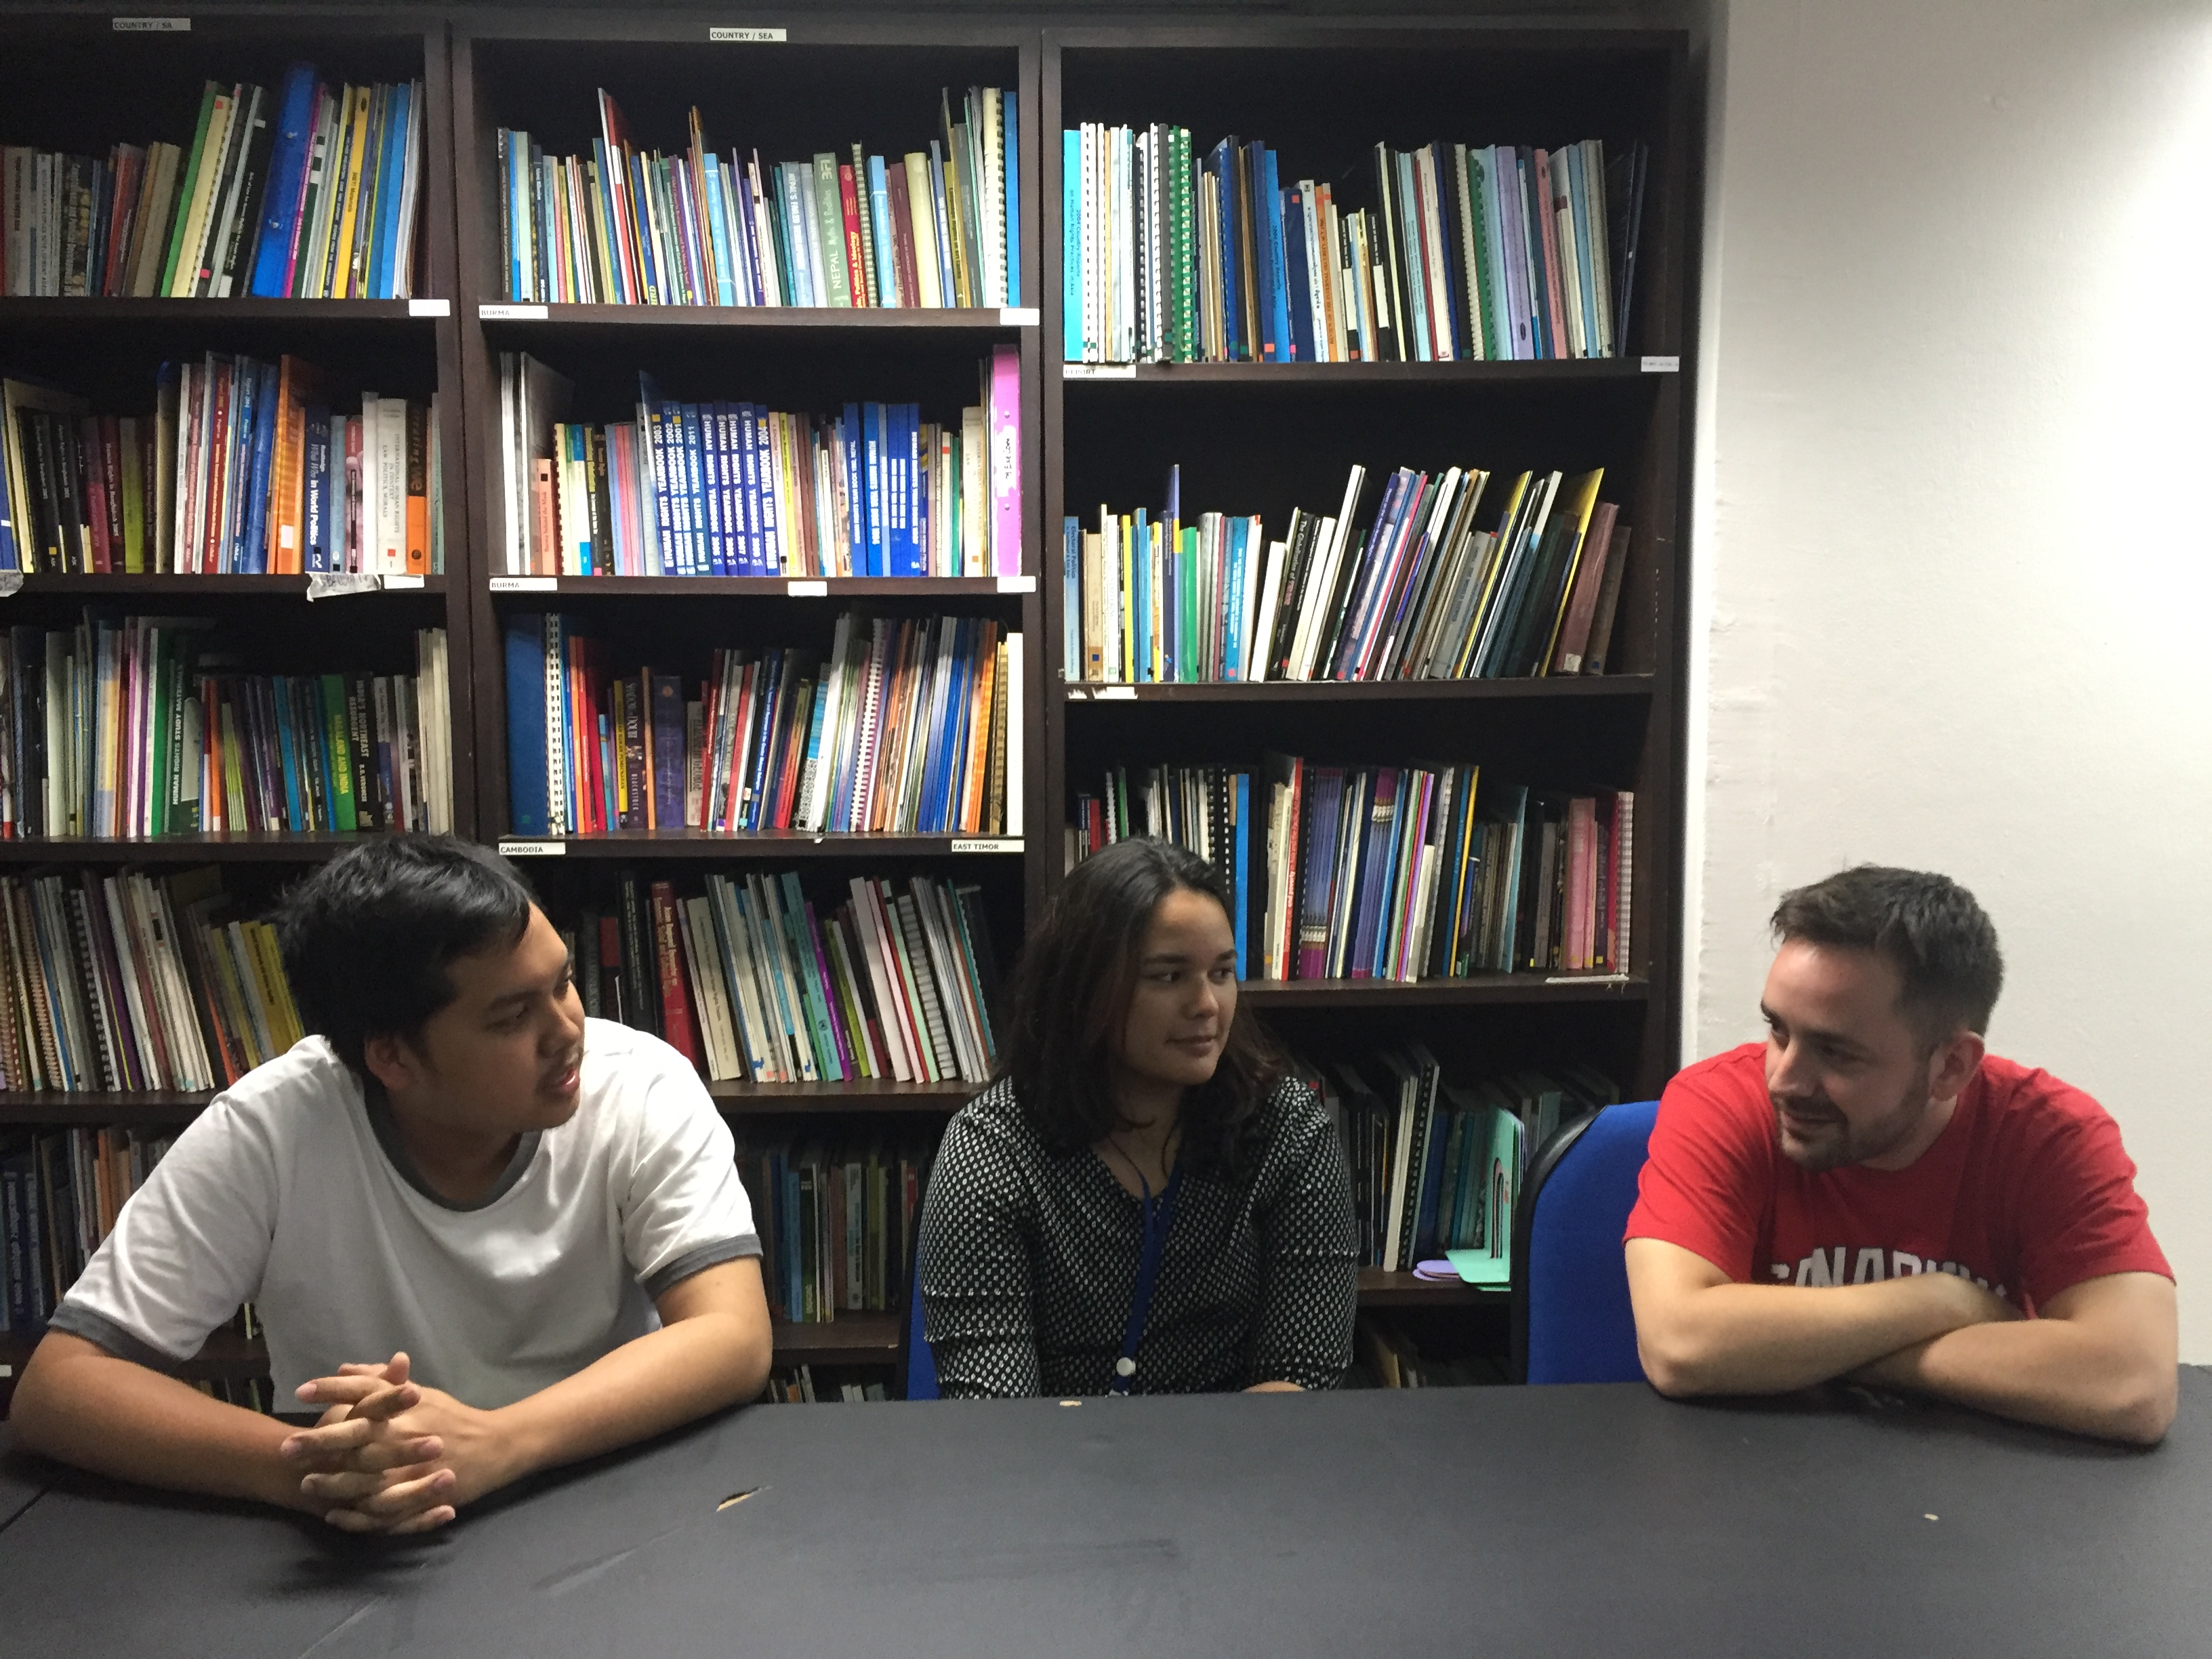 interns of forum asia interview shanna emile and oh forum what is your background and how did you get involved forum asia